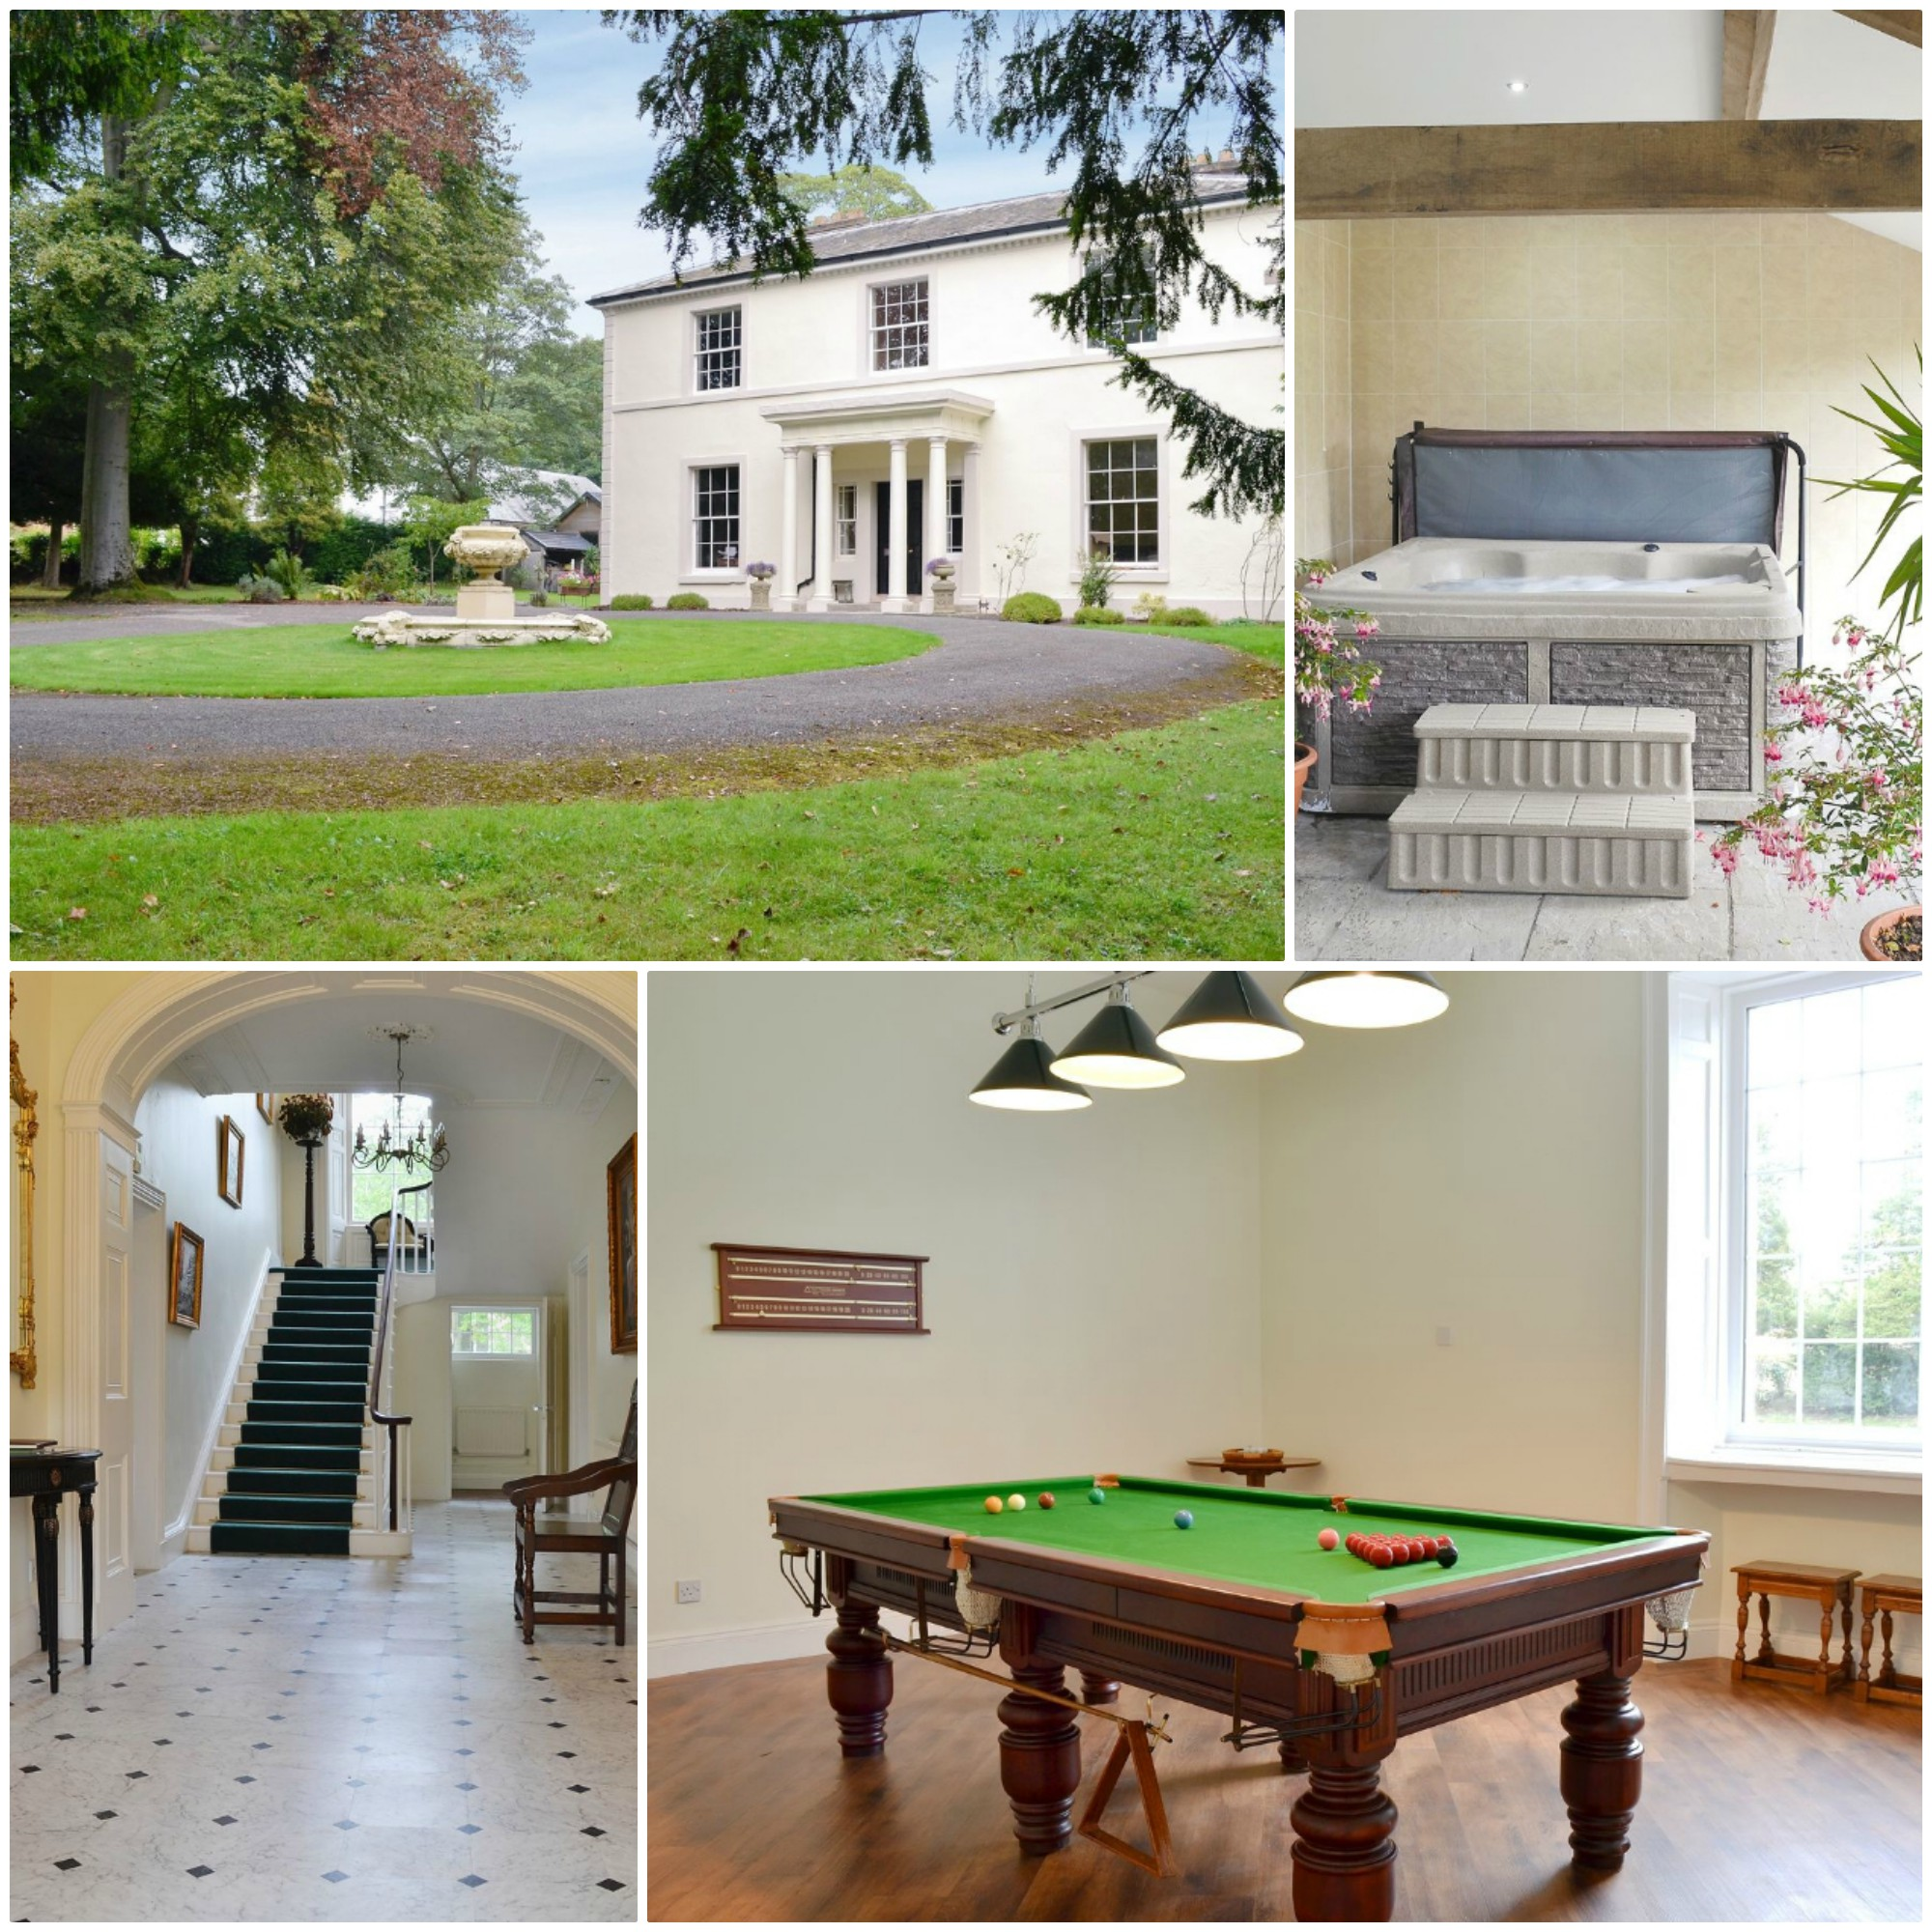 Lovely Georgian home in large grounds with a pool table and hot tub - pet friendly